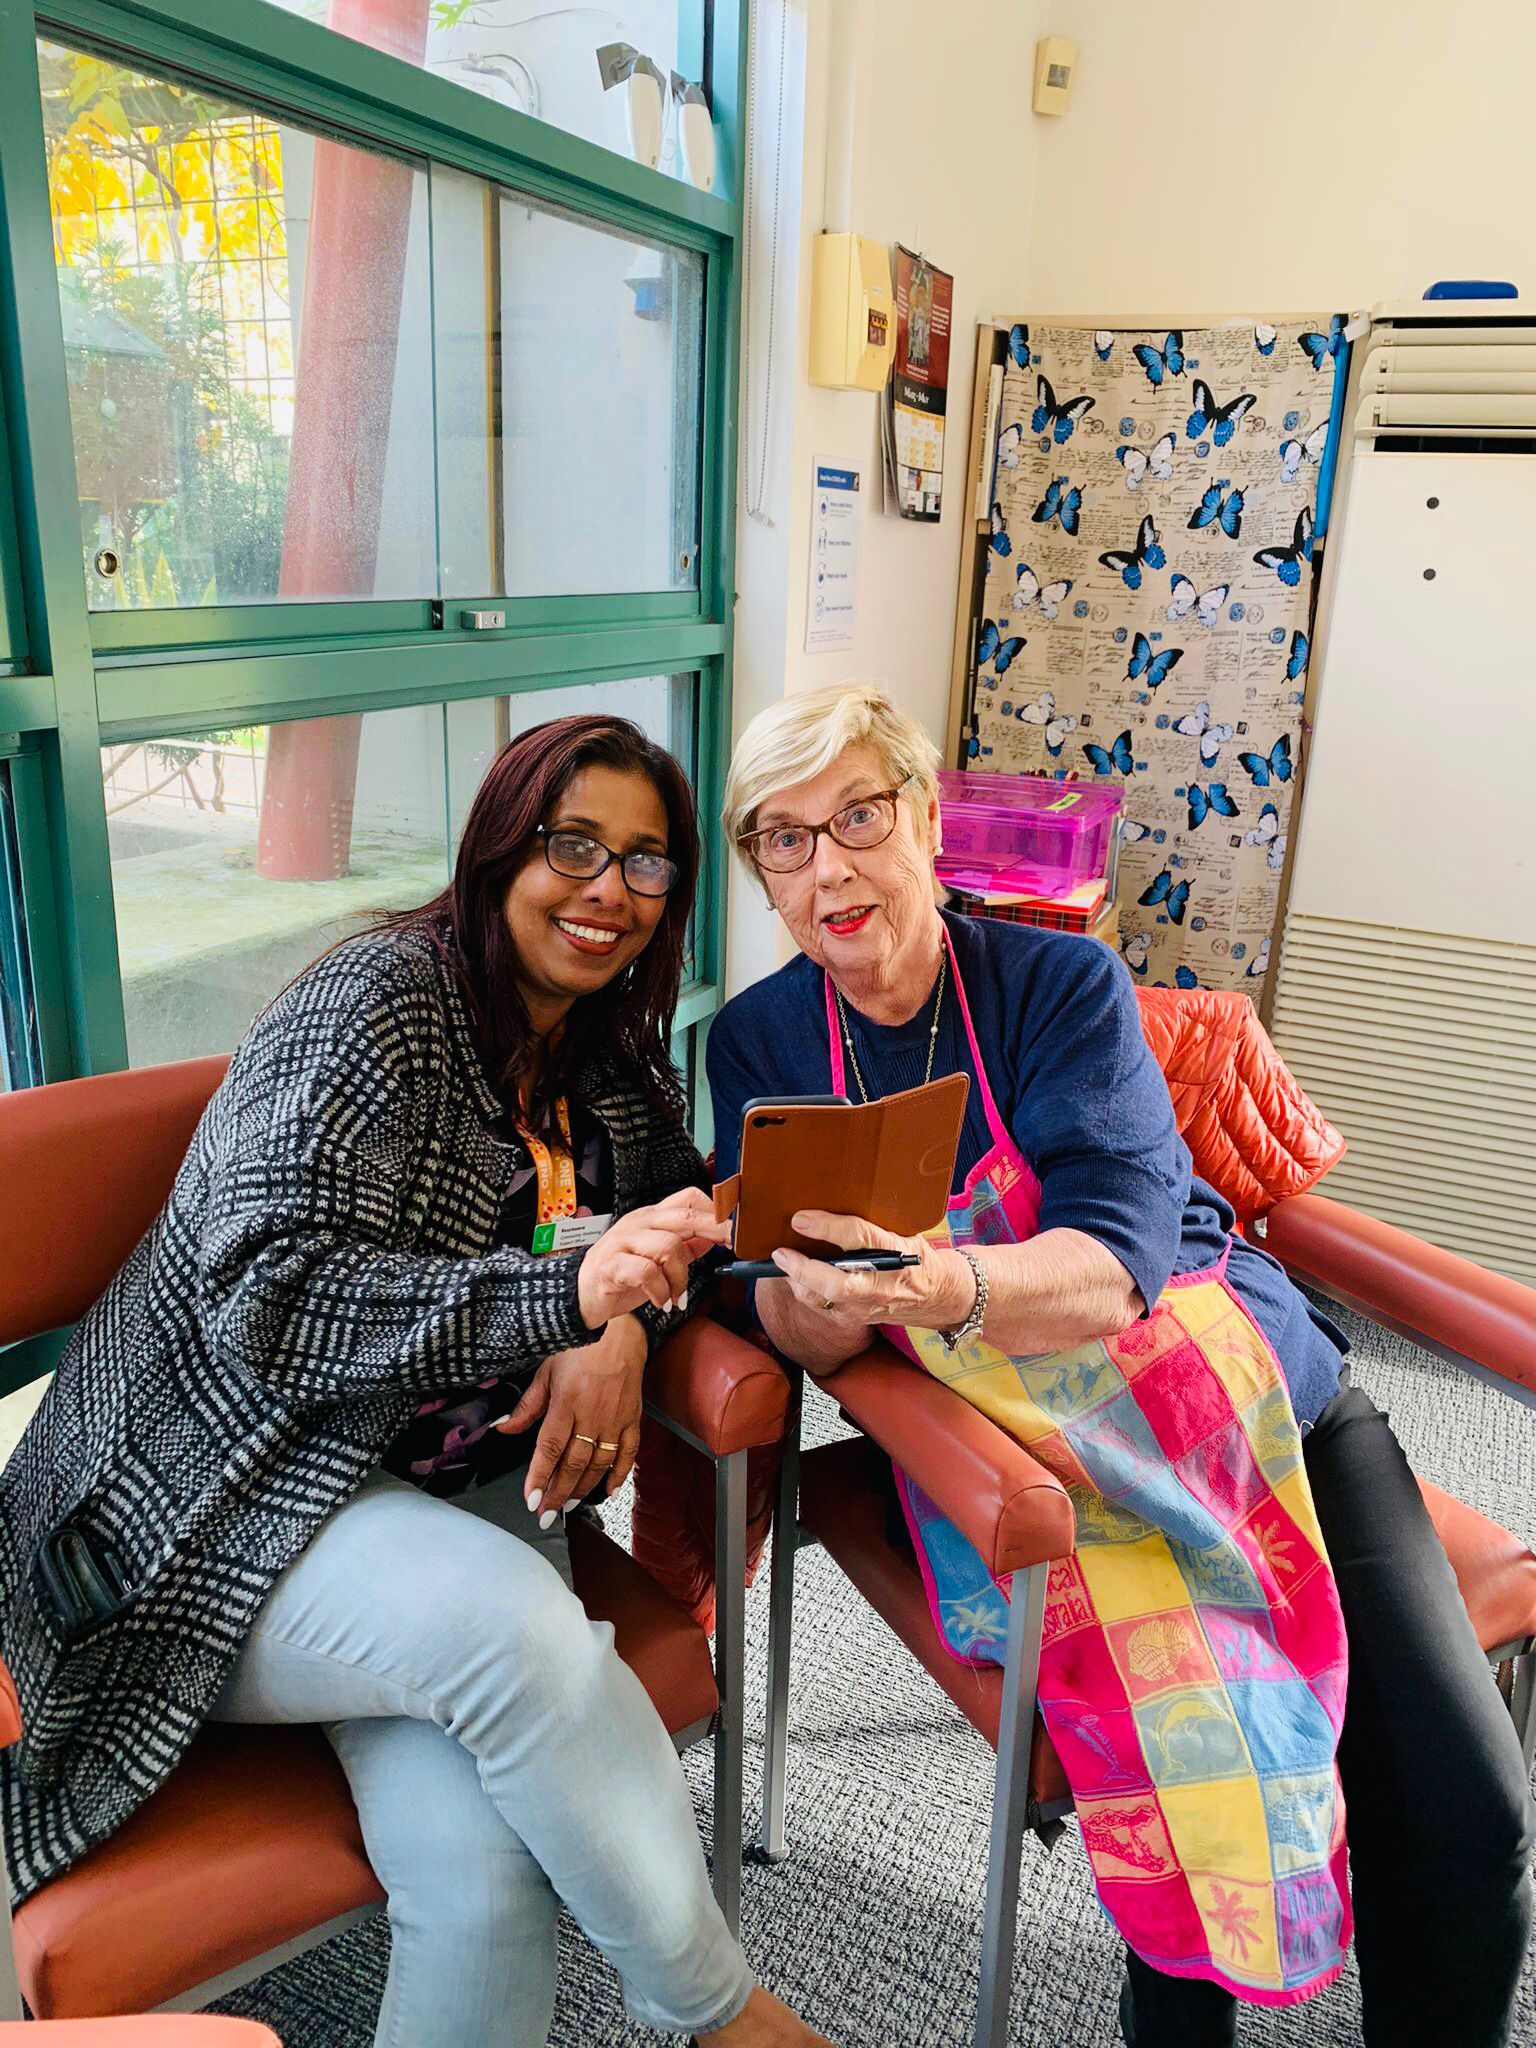 outreach worker teaching older person with Iphone